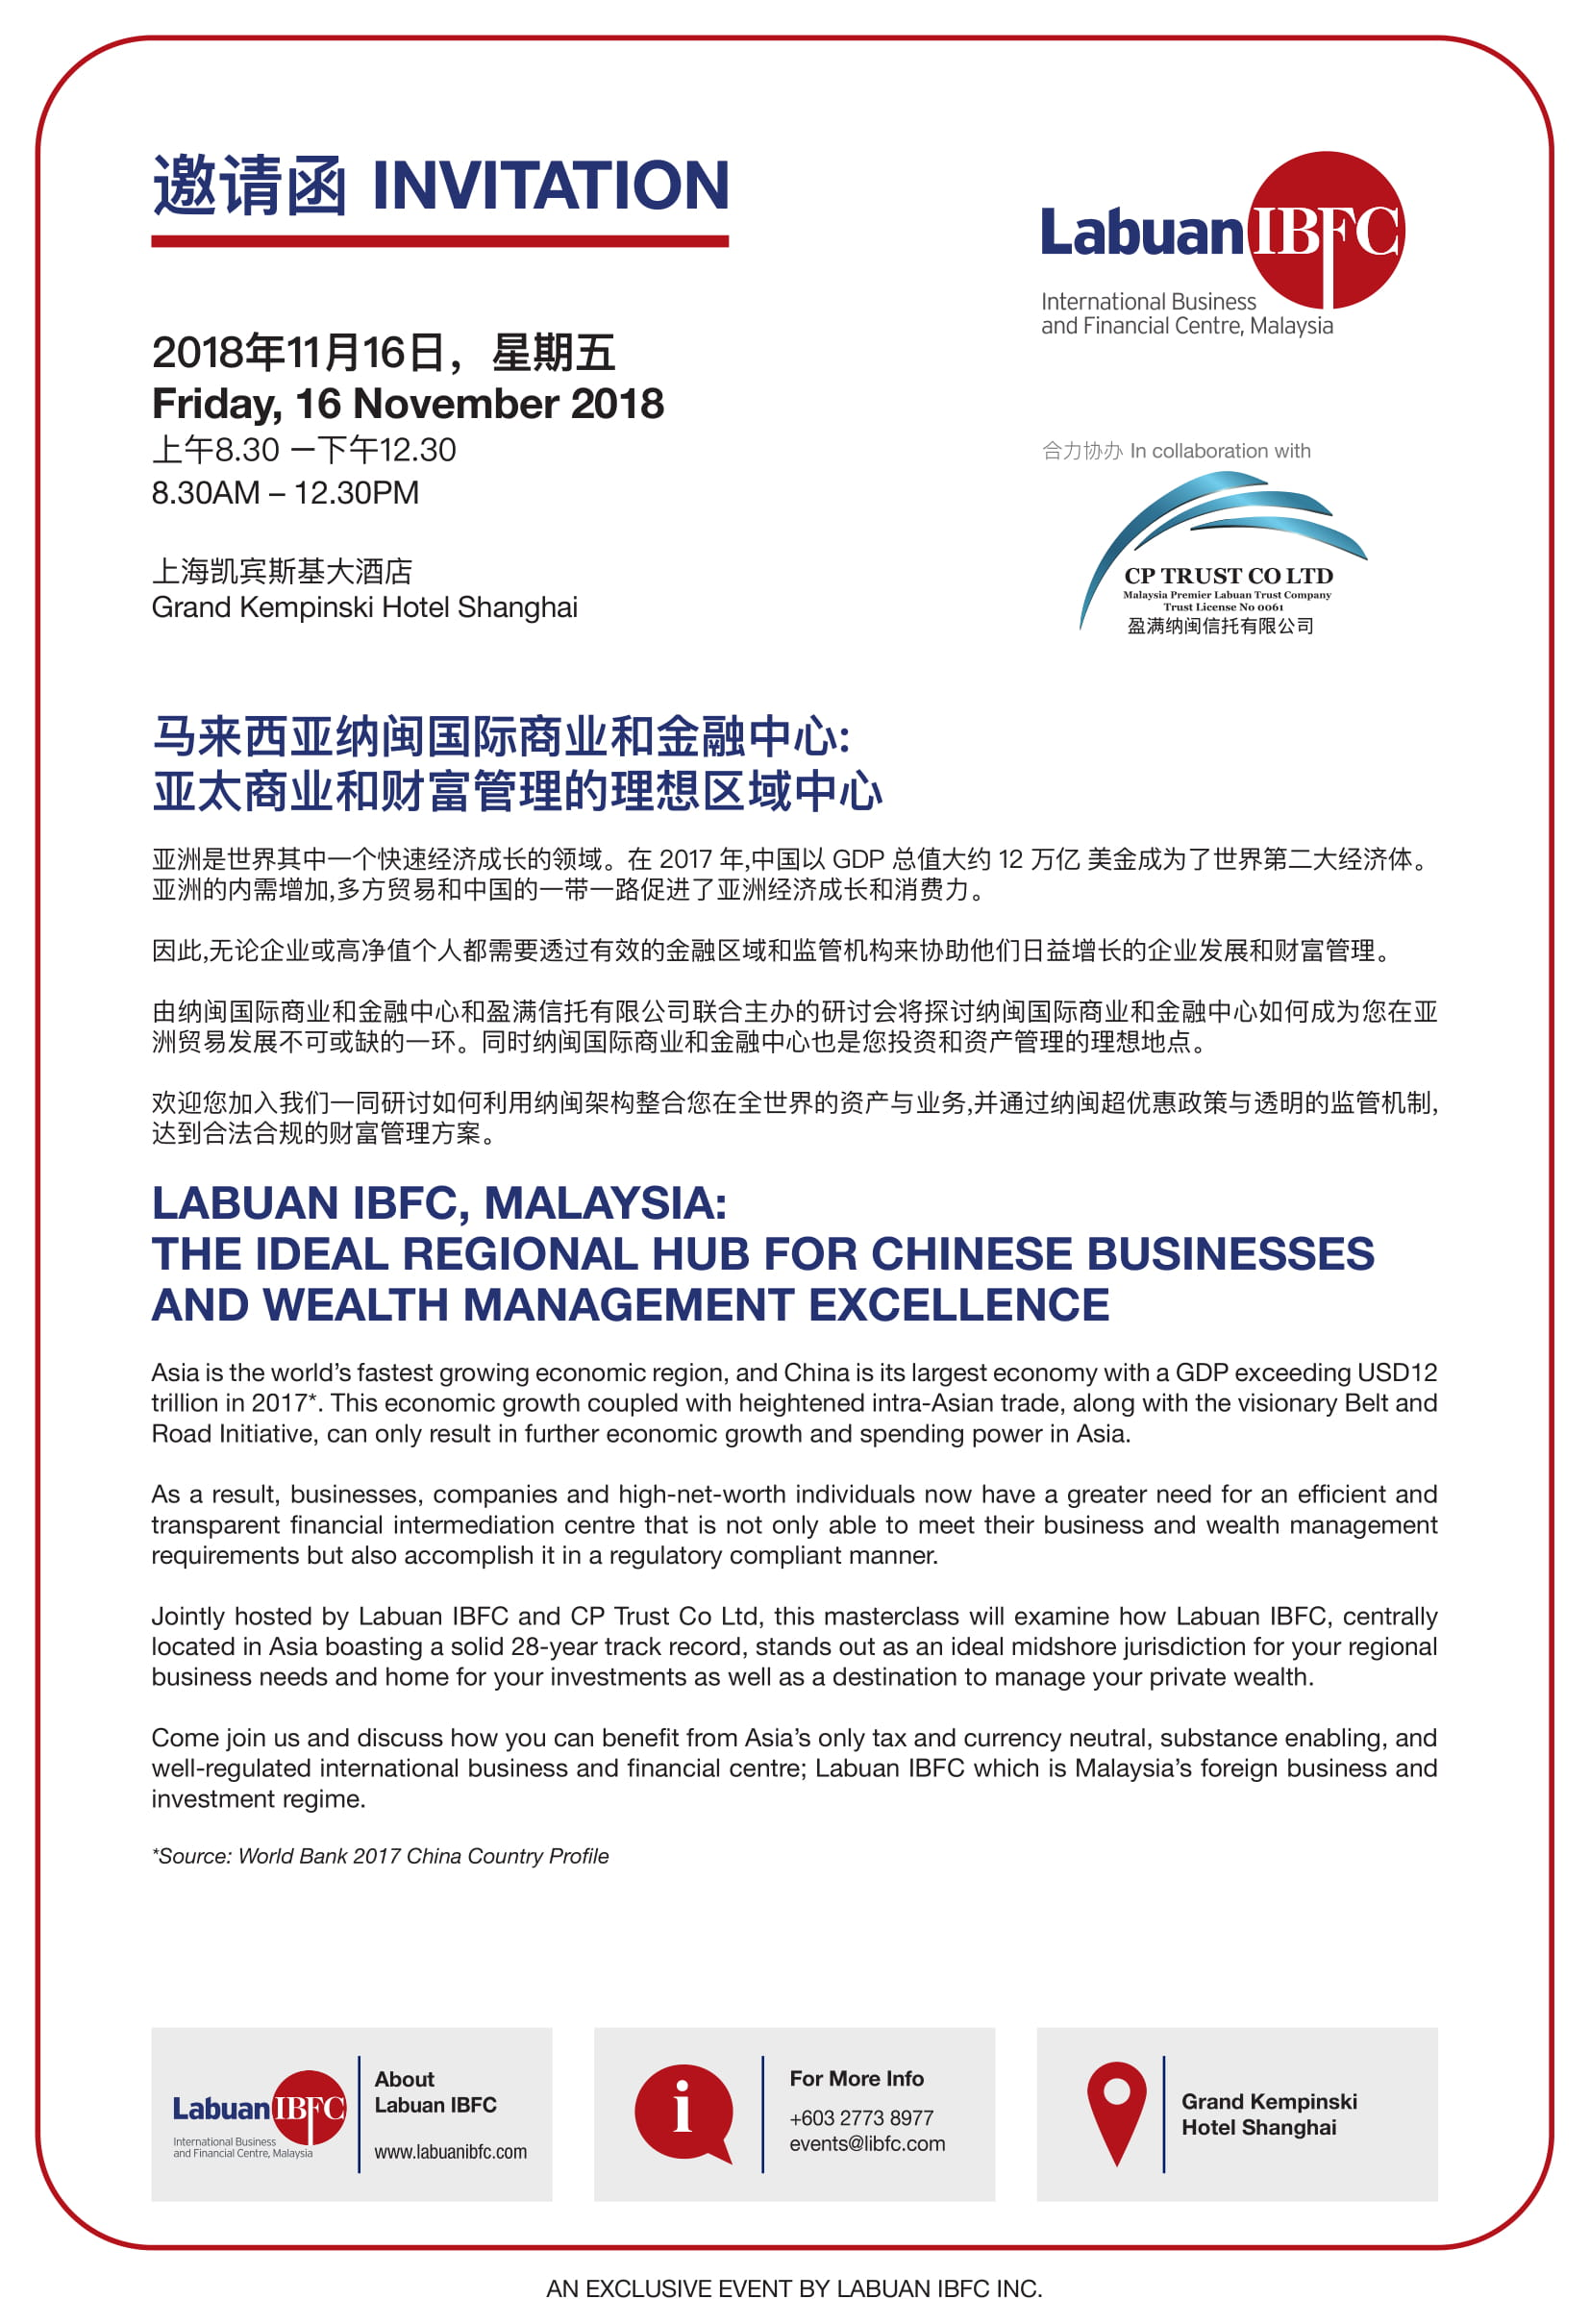 Labuan IBFC, Malaysia: The Ideal Regional Hub for Chinese